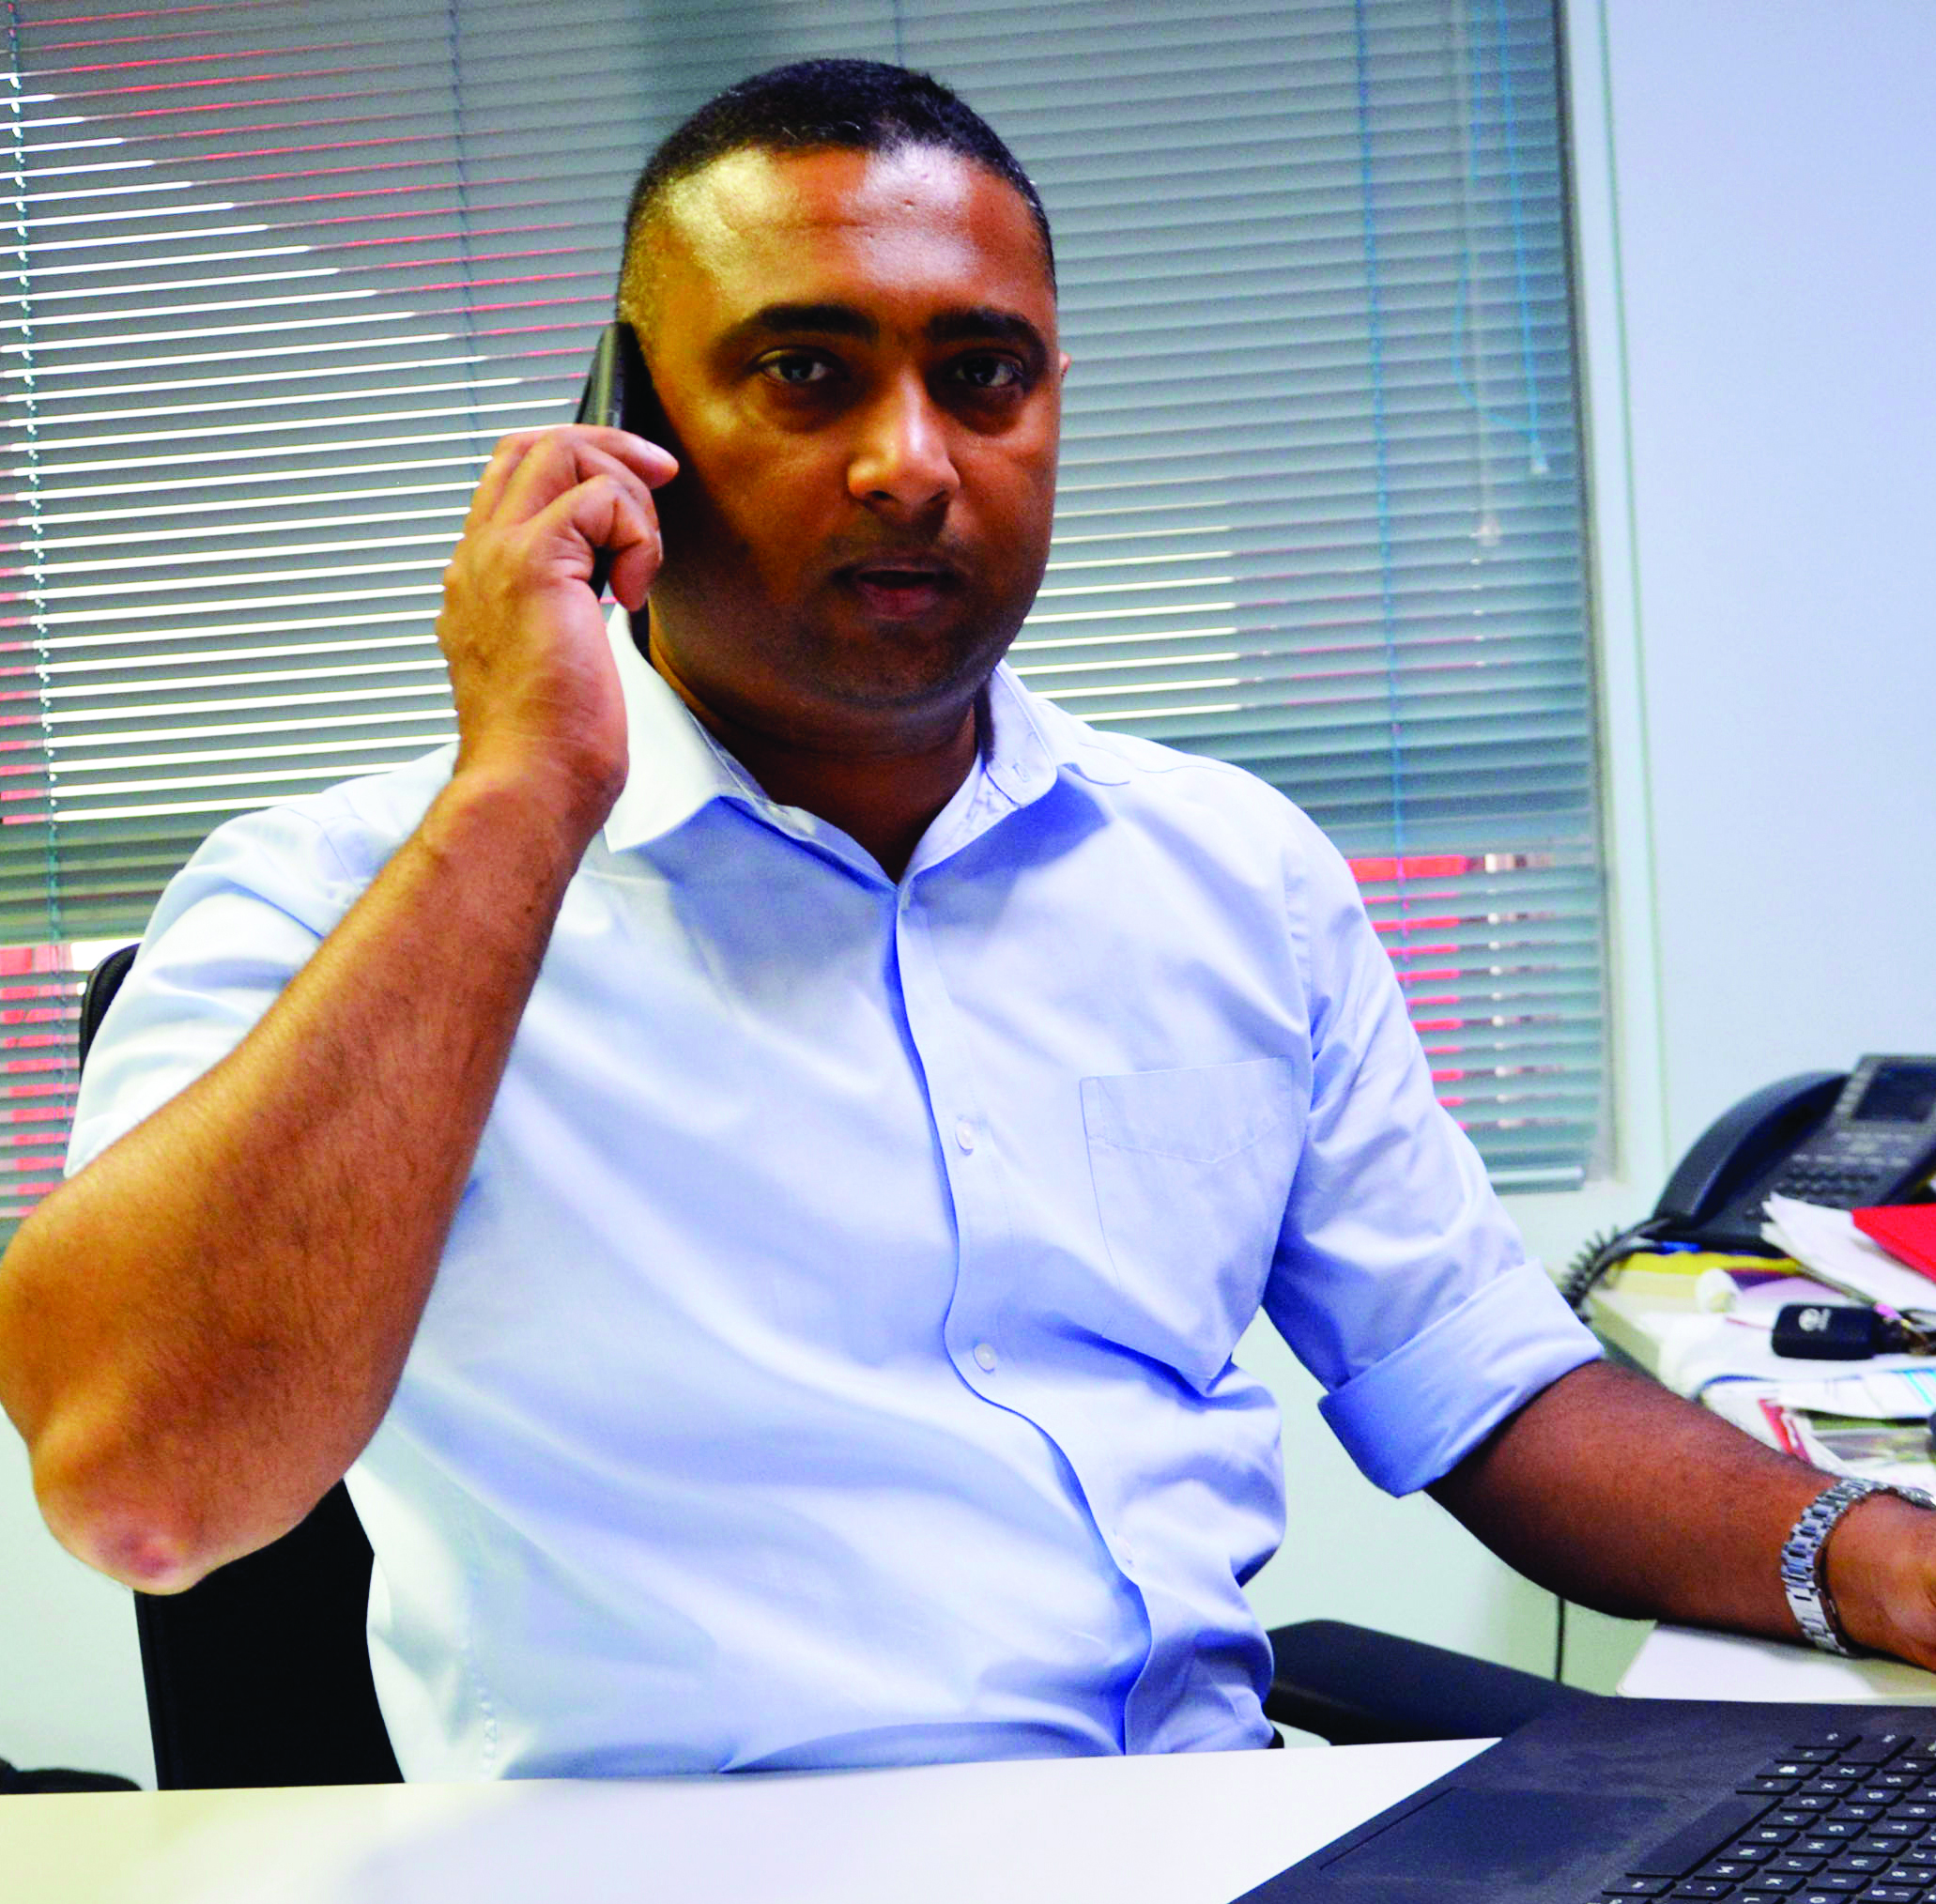 Vodafone Fiji's chief operating officer Ronald Prasad